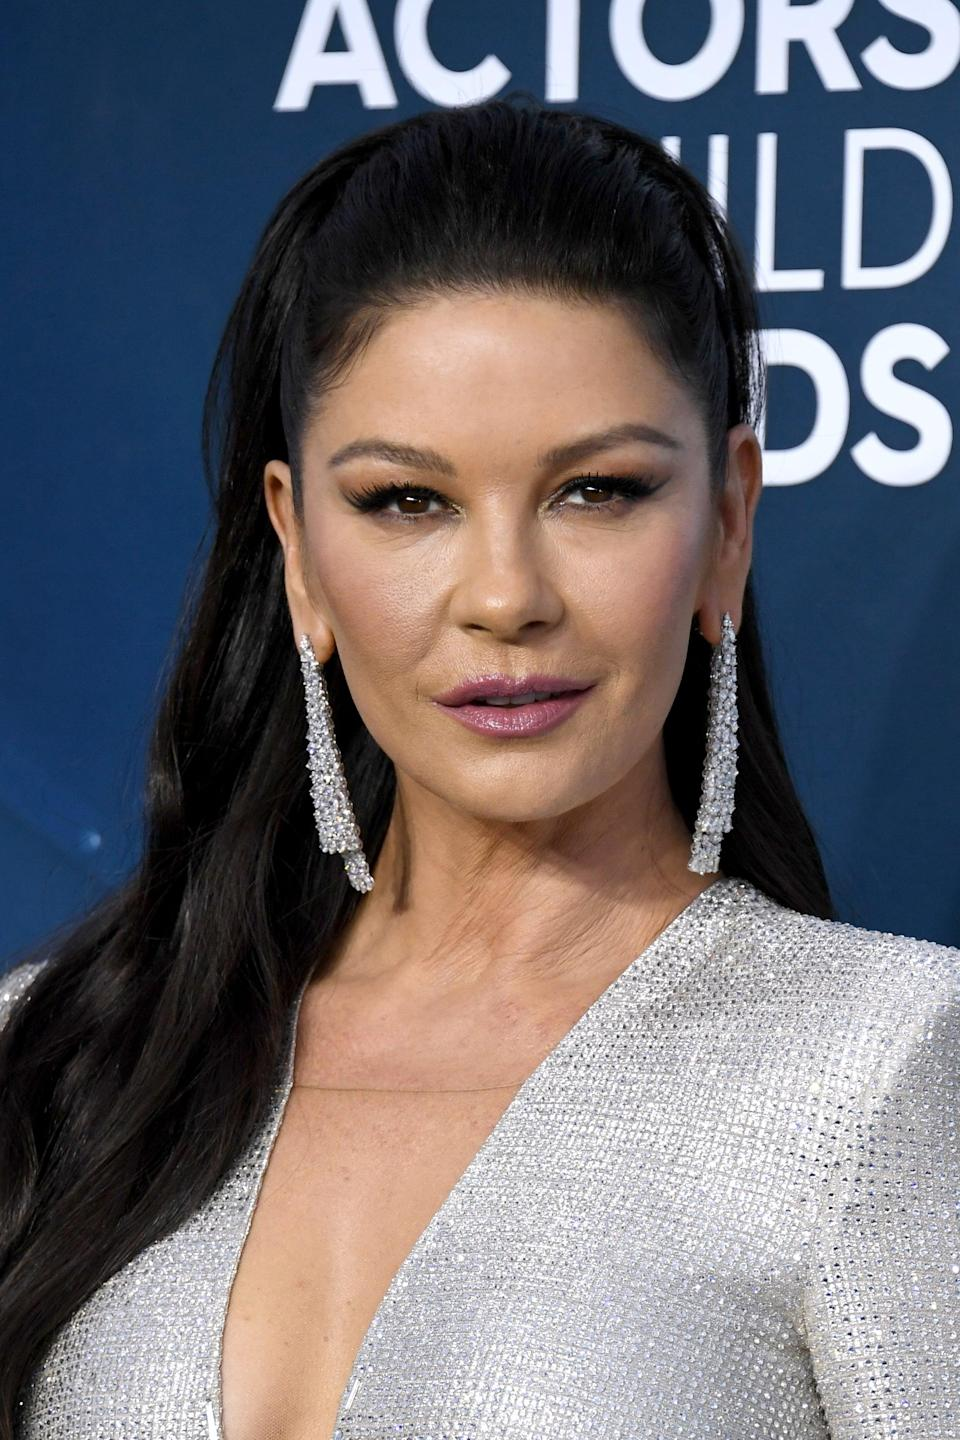 """<p>When not being fawned over by husband Gomez, Morticia can be found tending to her roses and acting as the glue that keeps her family together. Zeta-Jones, best known for her roles in <strong>Chicago</strong> and <strong>The Mask of Zorro</strong>, is set to take on the role previously played by Carolyn Jones on 1964's <strong>The Addams Family</strong>, Anjelica Huston in 1991's <strong>The Addams Family</strong> and <a href=""""https://www.popsugar.com/entertainment/addams-family-values-halloween-essay-47863092"""" class=""""link rapid-noclick-resp"""" rel=""""nofollow noopener"""" target=""""_blank"""" data-ylk=""""slk:1993's Addams Family Values"""">1993's <strong>Addams Family Values</strong></a>, and <a class=""""link rapid-noclick-resp"""" href=""""https://www.popsugar.com/Charlize-Theron"""" rel=""""nofollow noopener"""" target=""""_blank"""" data-ylk=""""slk:Charlize Theron"""">Charlize Theron</a> in the 2019 animated film <strong>The Addams Family</strong>.</p>"""